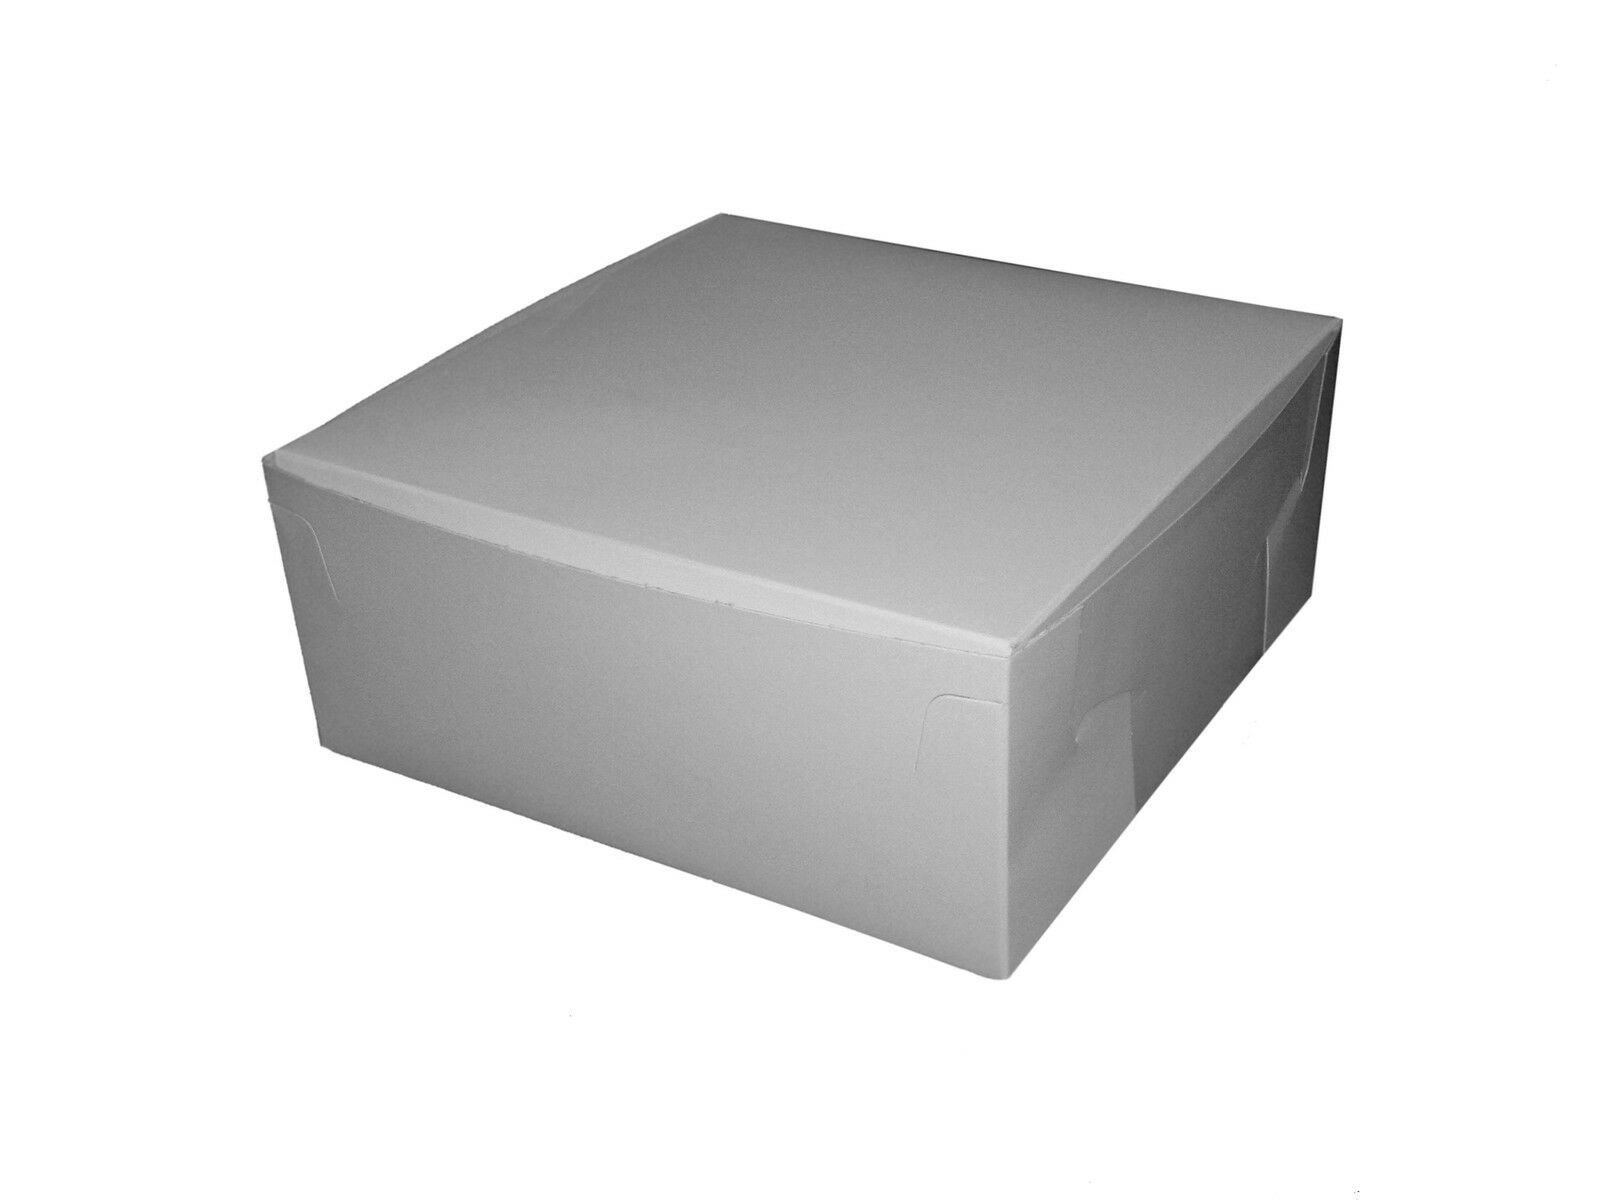 100 Bianco Fata Torta   dolce dolce dolce   Muffin Scatole 9X9X4  Bakery   PARTY cada4b